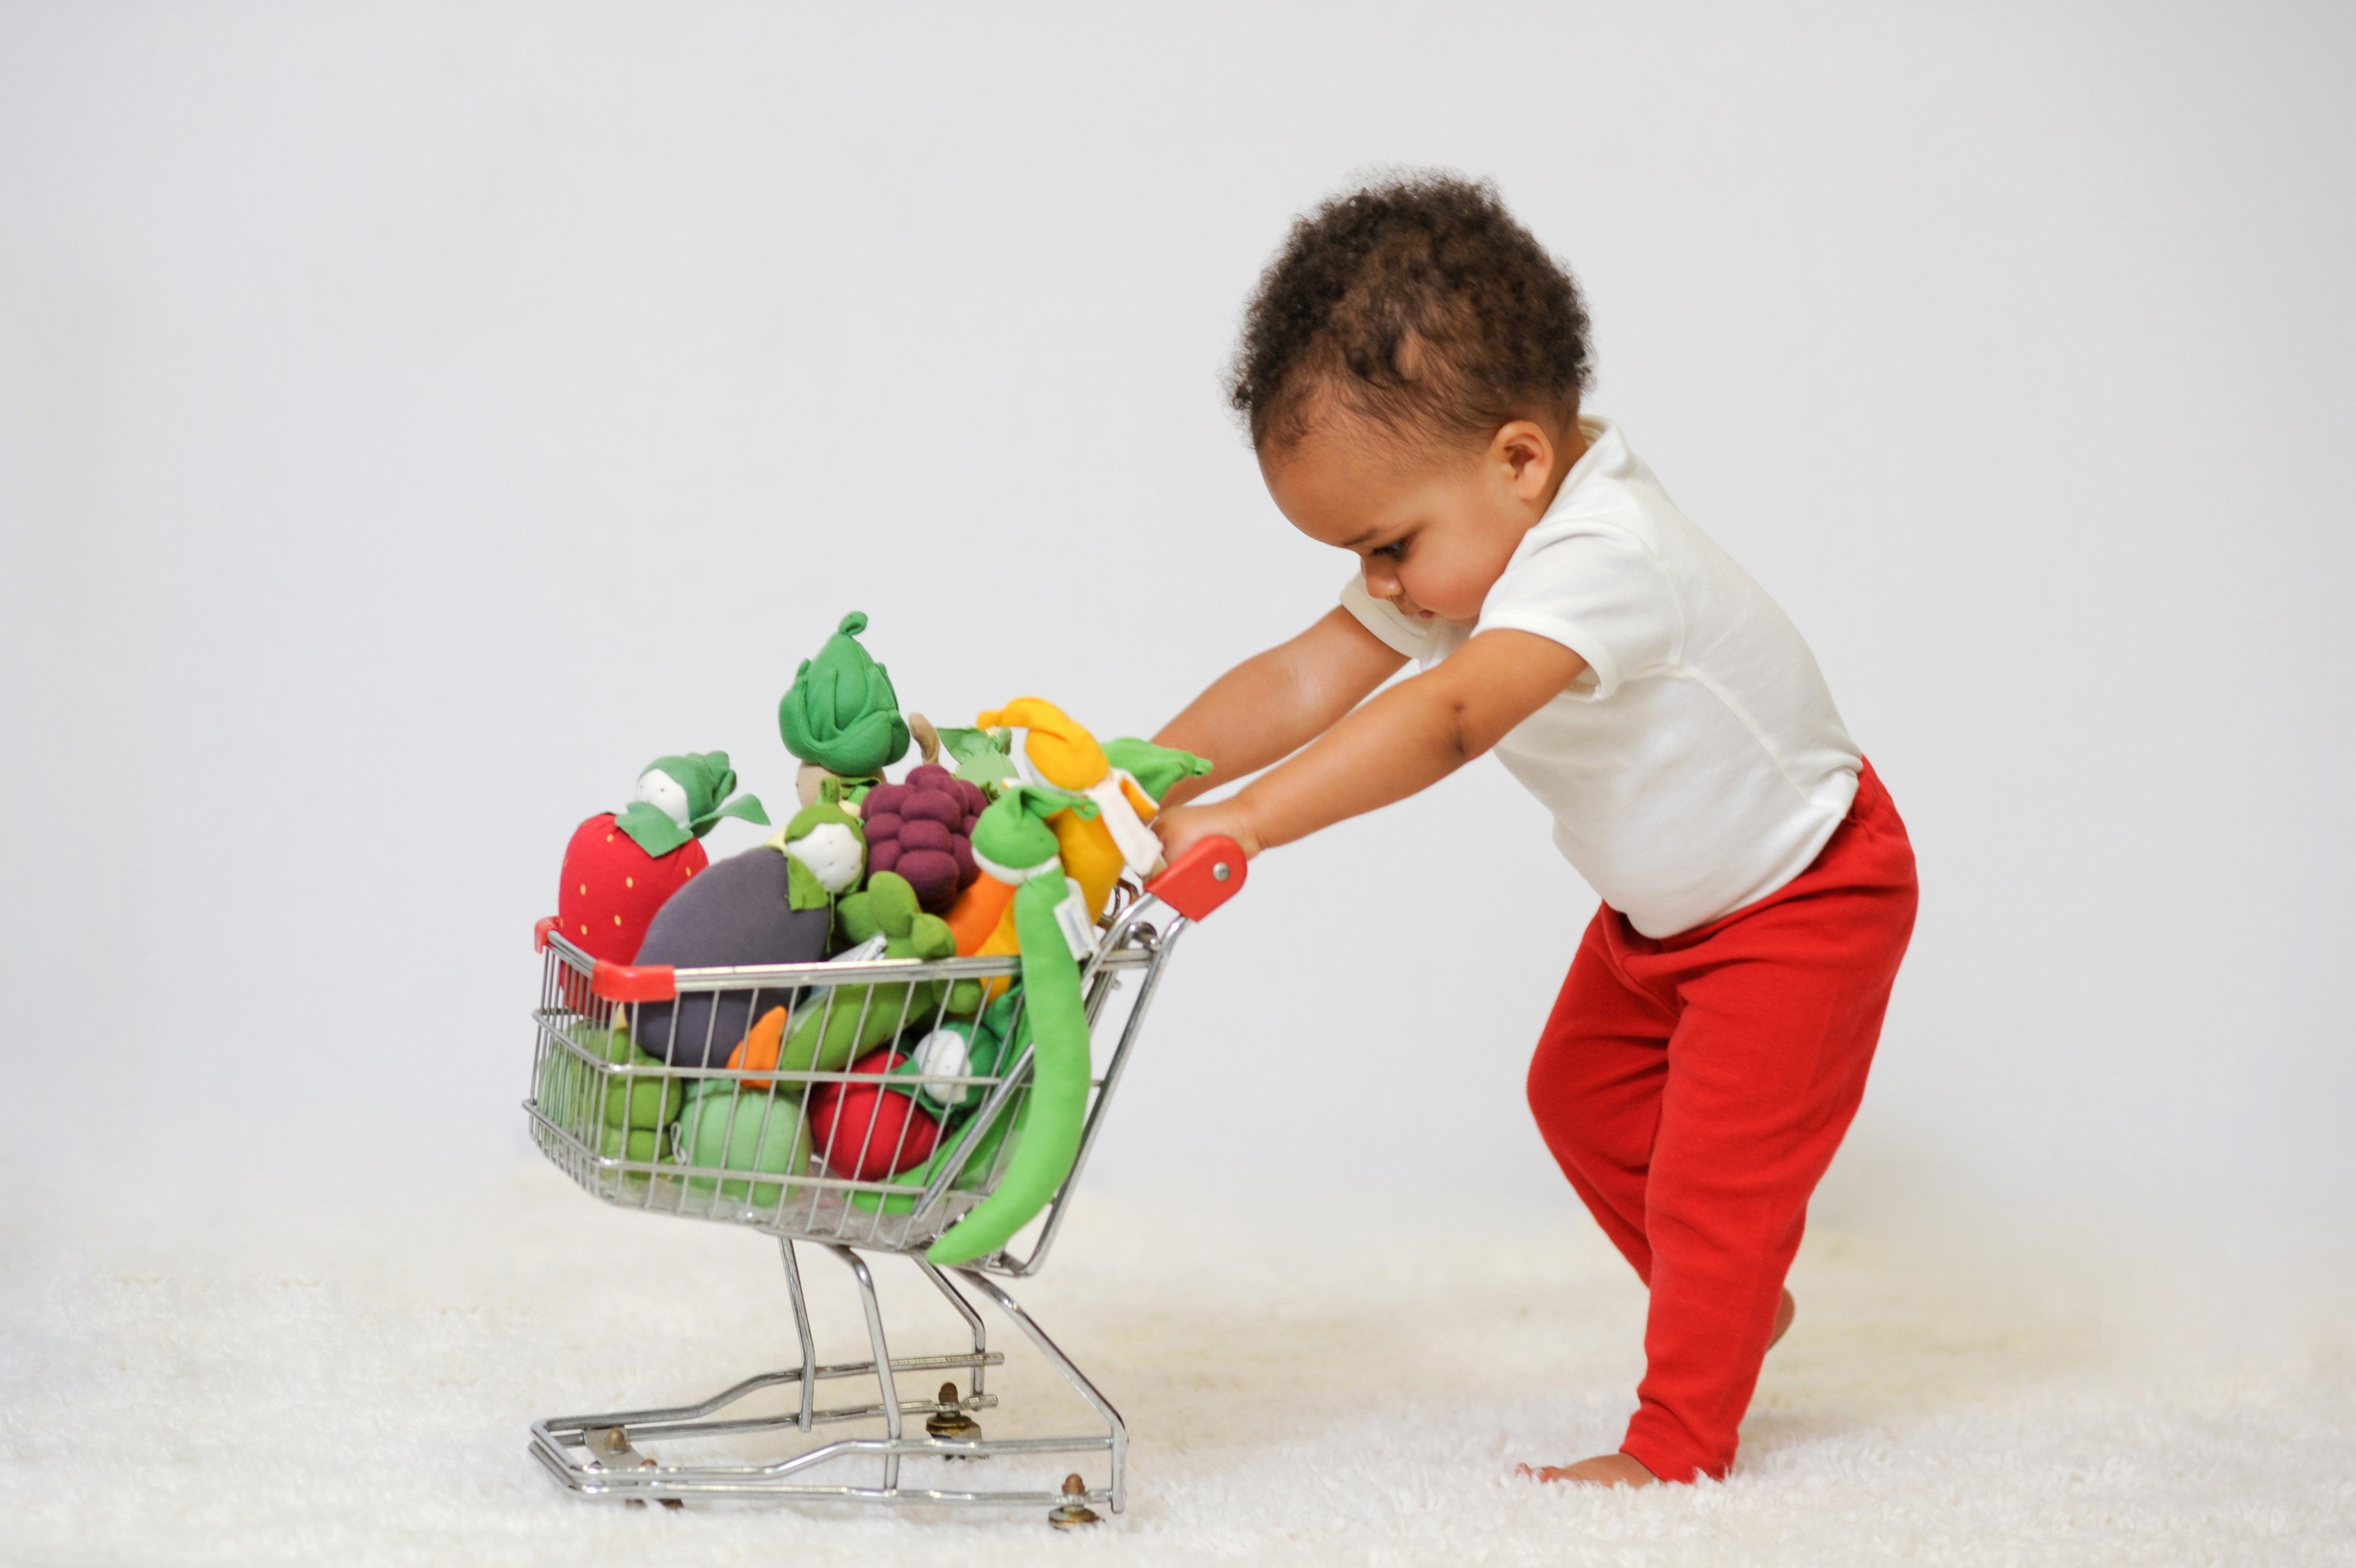 Baby pushing cart full of Fruit and Veggie Toys